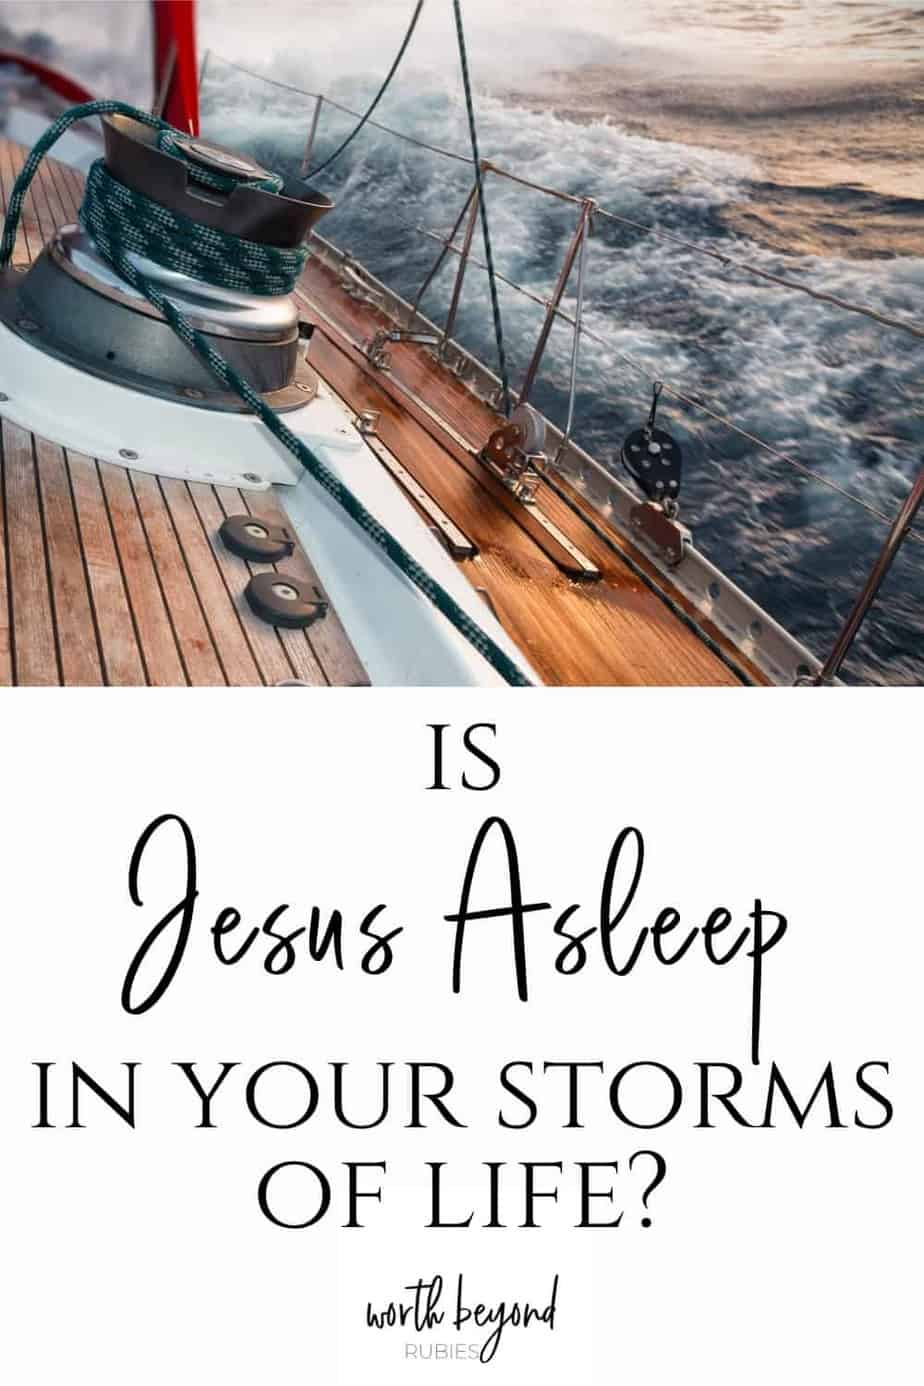 An image of a wooden deck of a ship in stormy waters and text that says Is Jesus Asleep in Your Storms of Life?